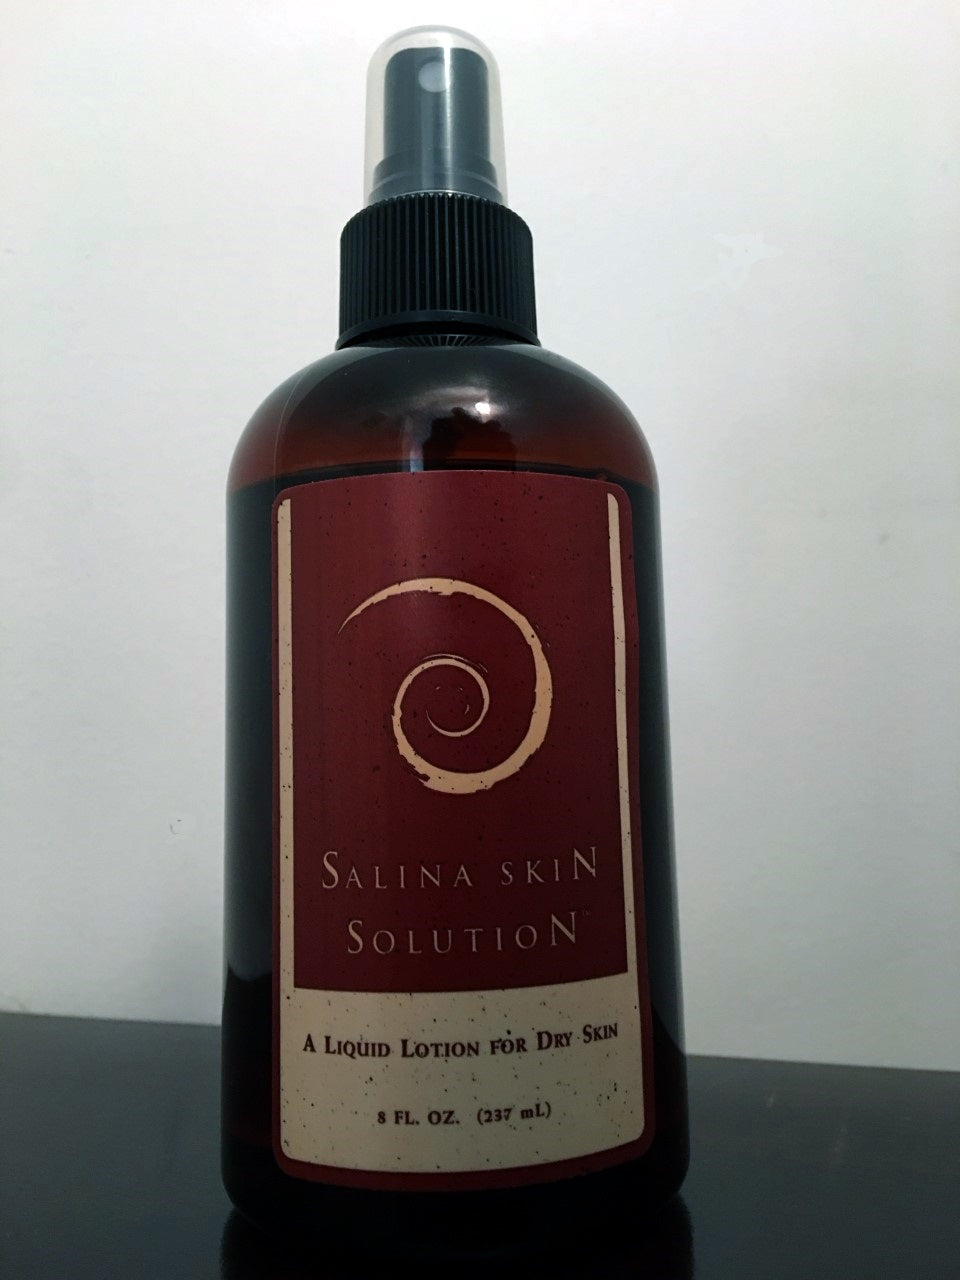 Salina Lotion, from Pure Cell Organics, in Salt Lake City